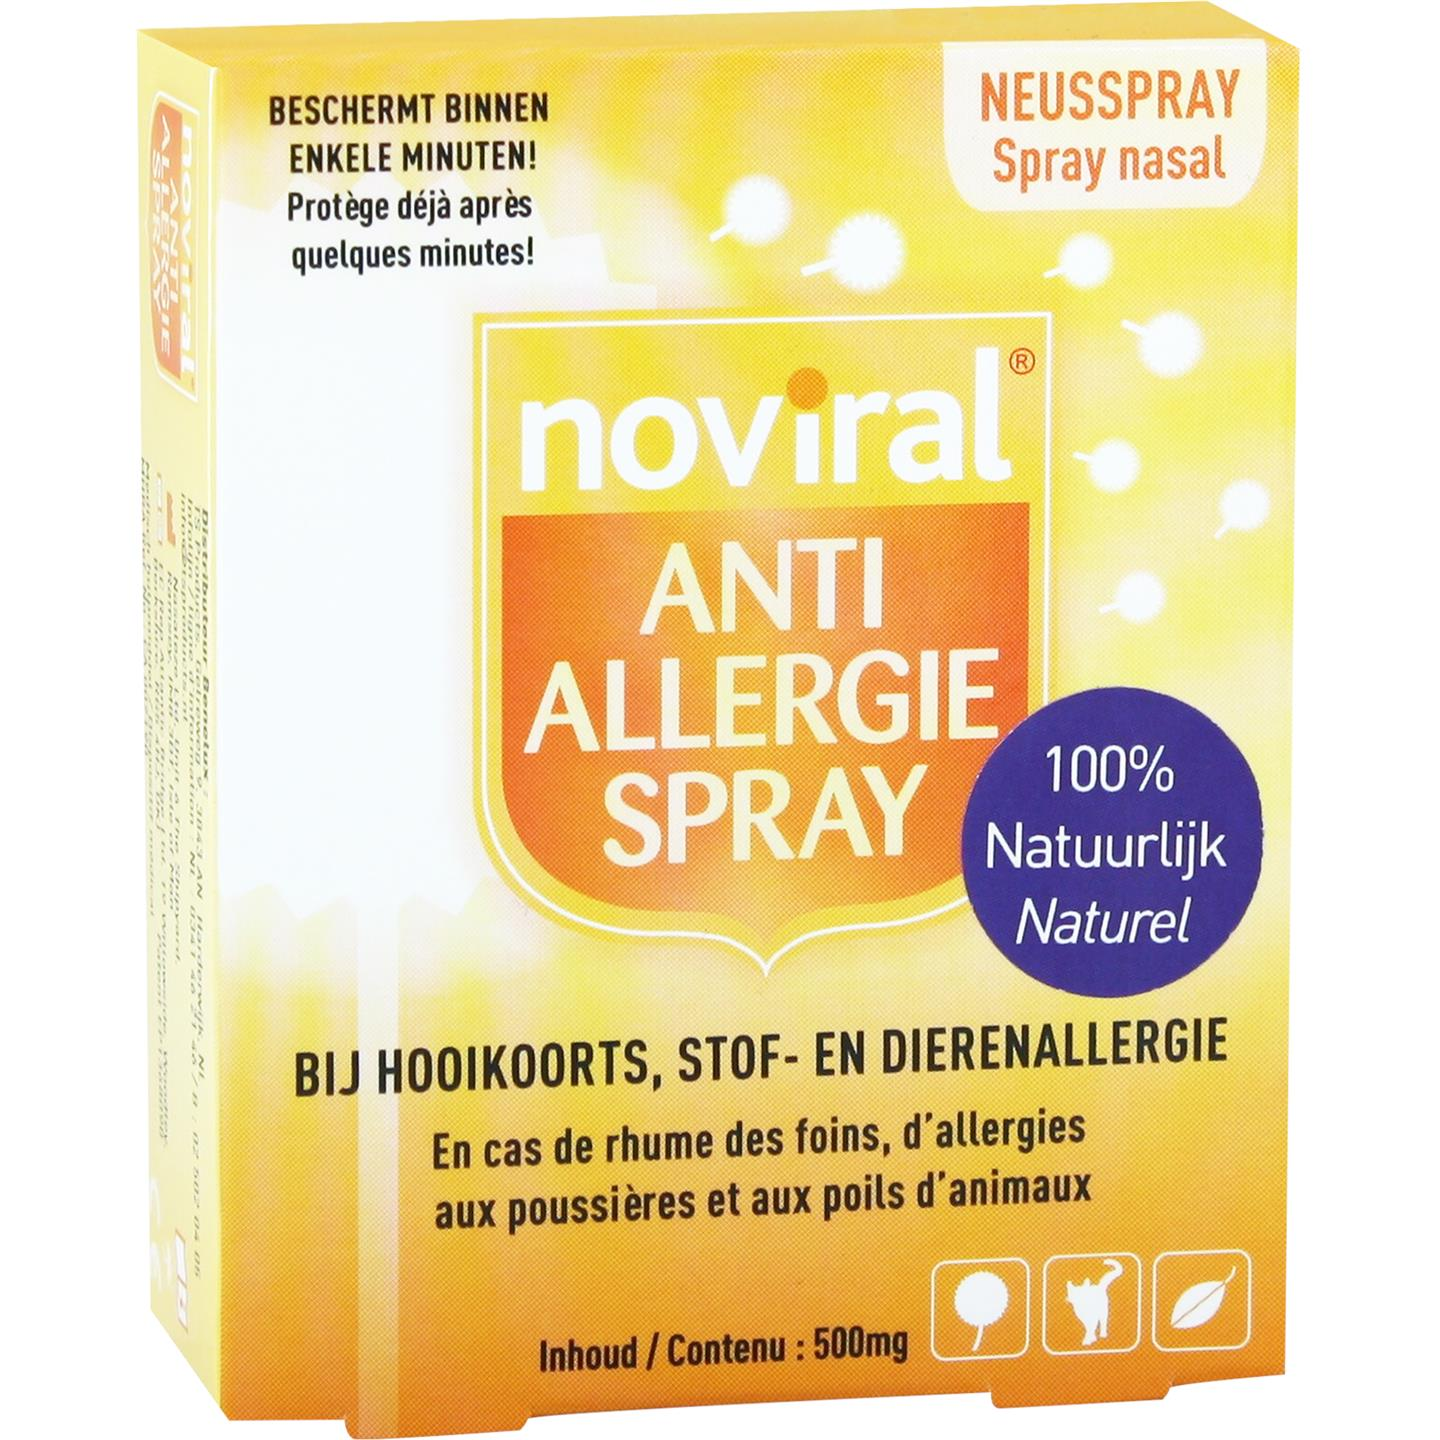 Noviral Anti Allergie Spray 500mg